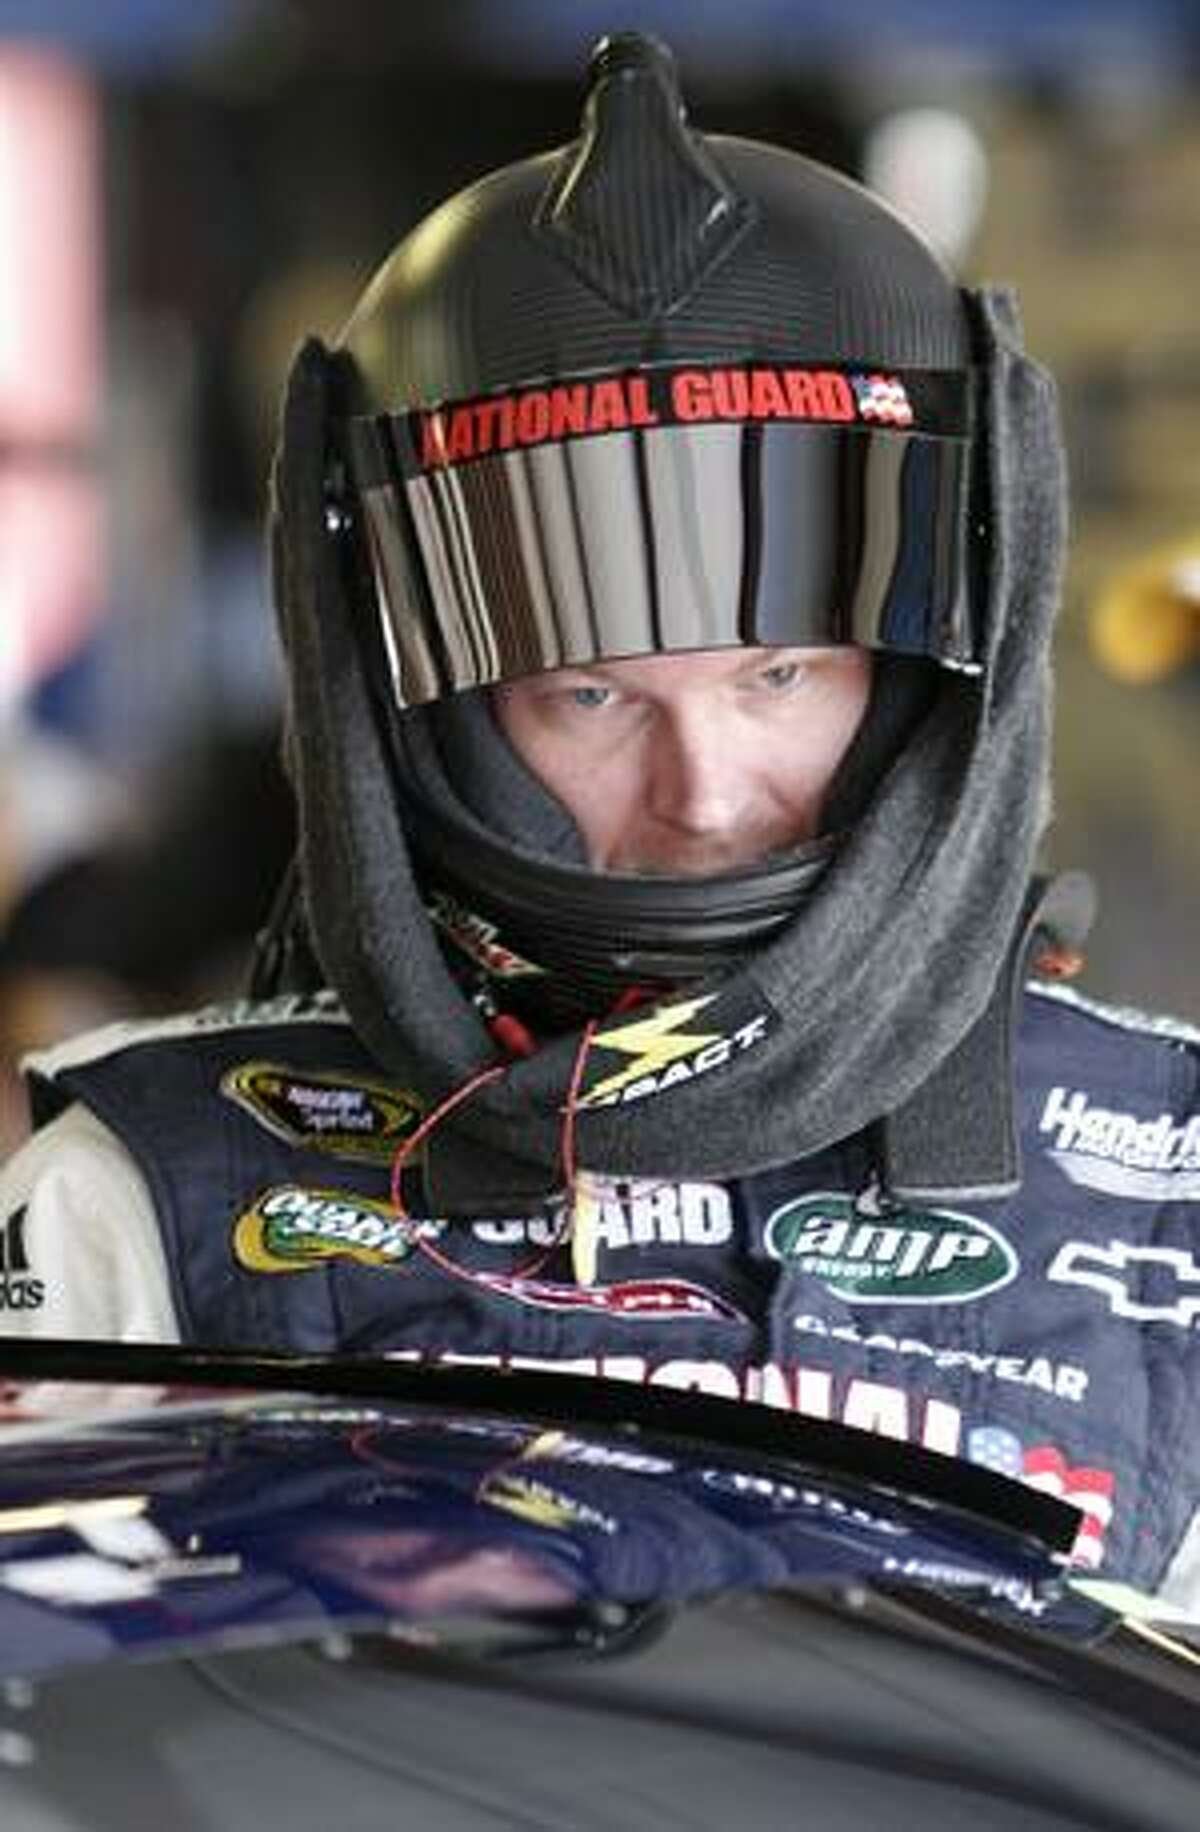 Driver Dale Earnhardt Jr., gets ready to practice for Sunday's NASCAR Sprint Cup Series Aaron's 499 auto race at Talladega Superspeedway in Talladega, Ala., Friday, April 23, 2010. (AP Photo/Glenn Smith)